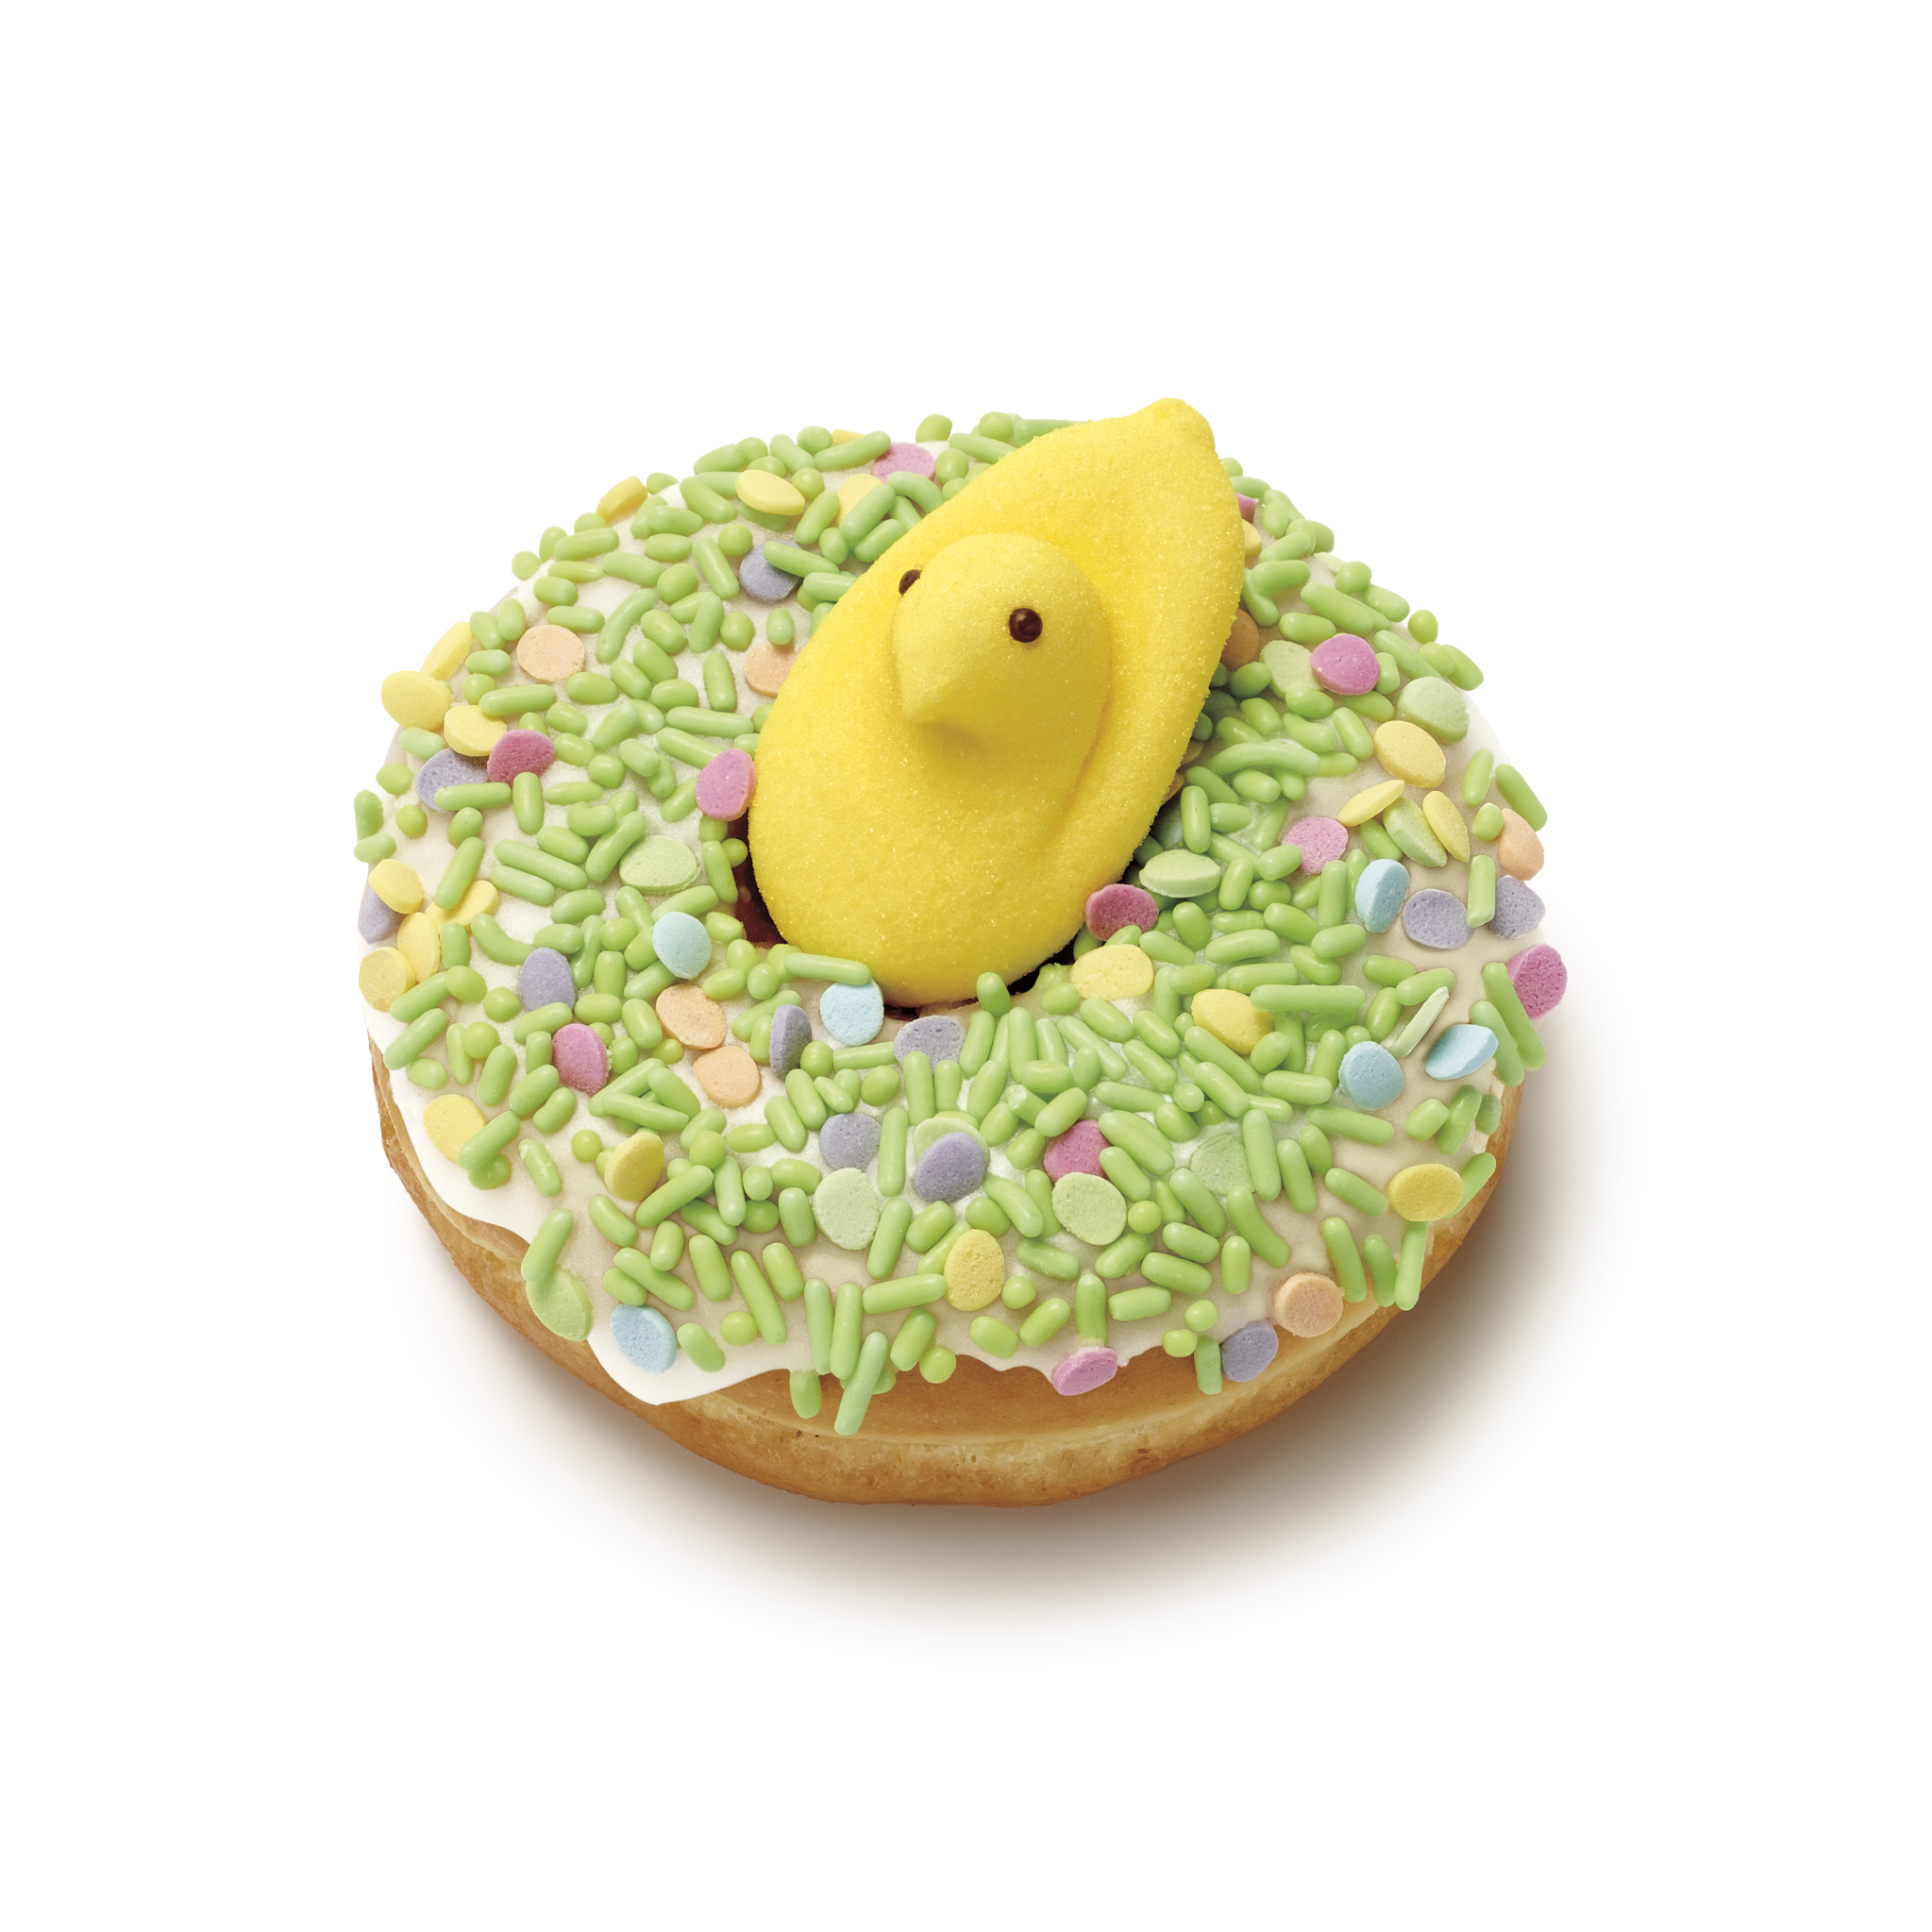 Dunkin' celebrates spring with a Peeps free coffee, doughnut promotion in Hartsdale